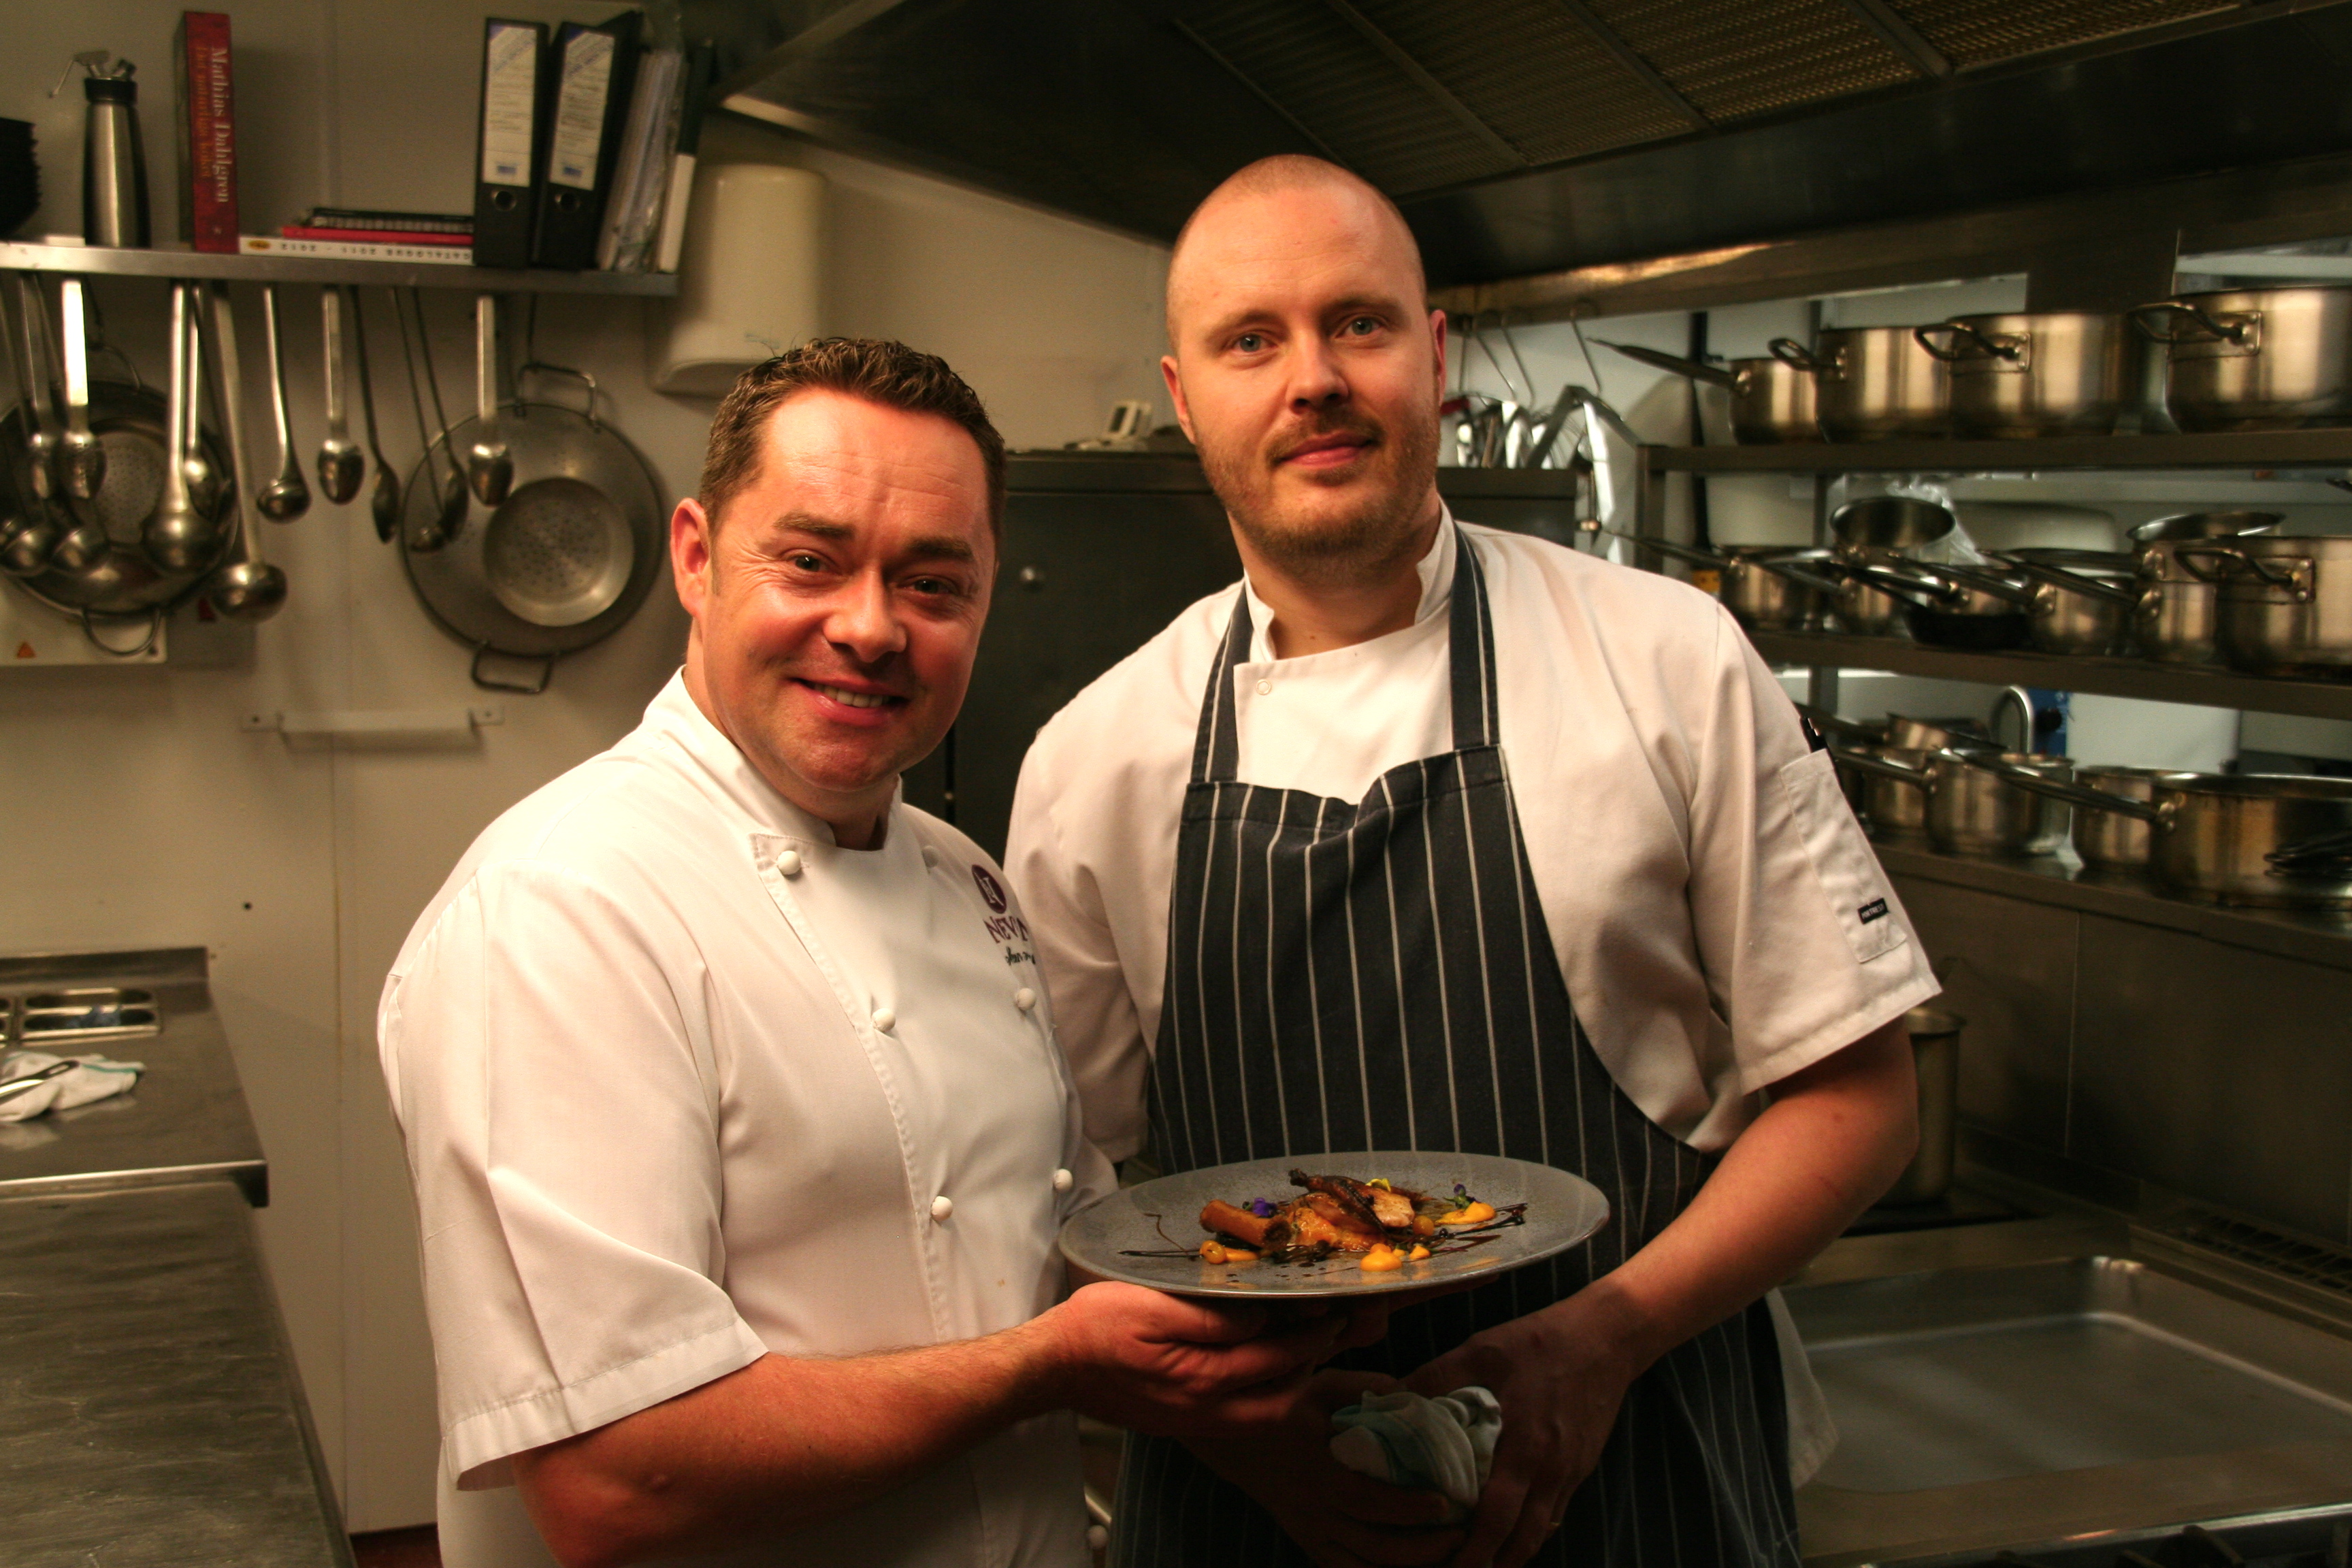 The greenhouse restaurant dublin -  17 Neven Maguire Home Chef Wednesday 24th April Neven And Mickael